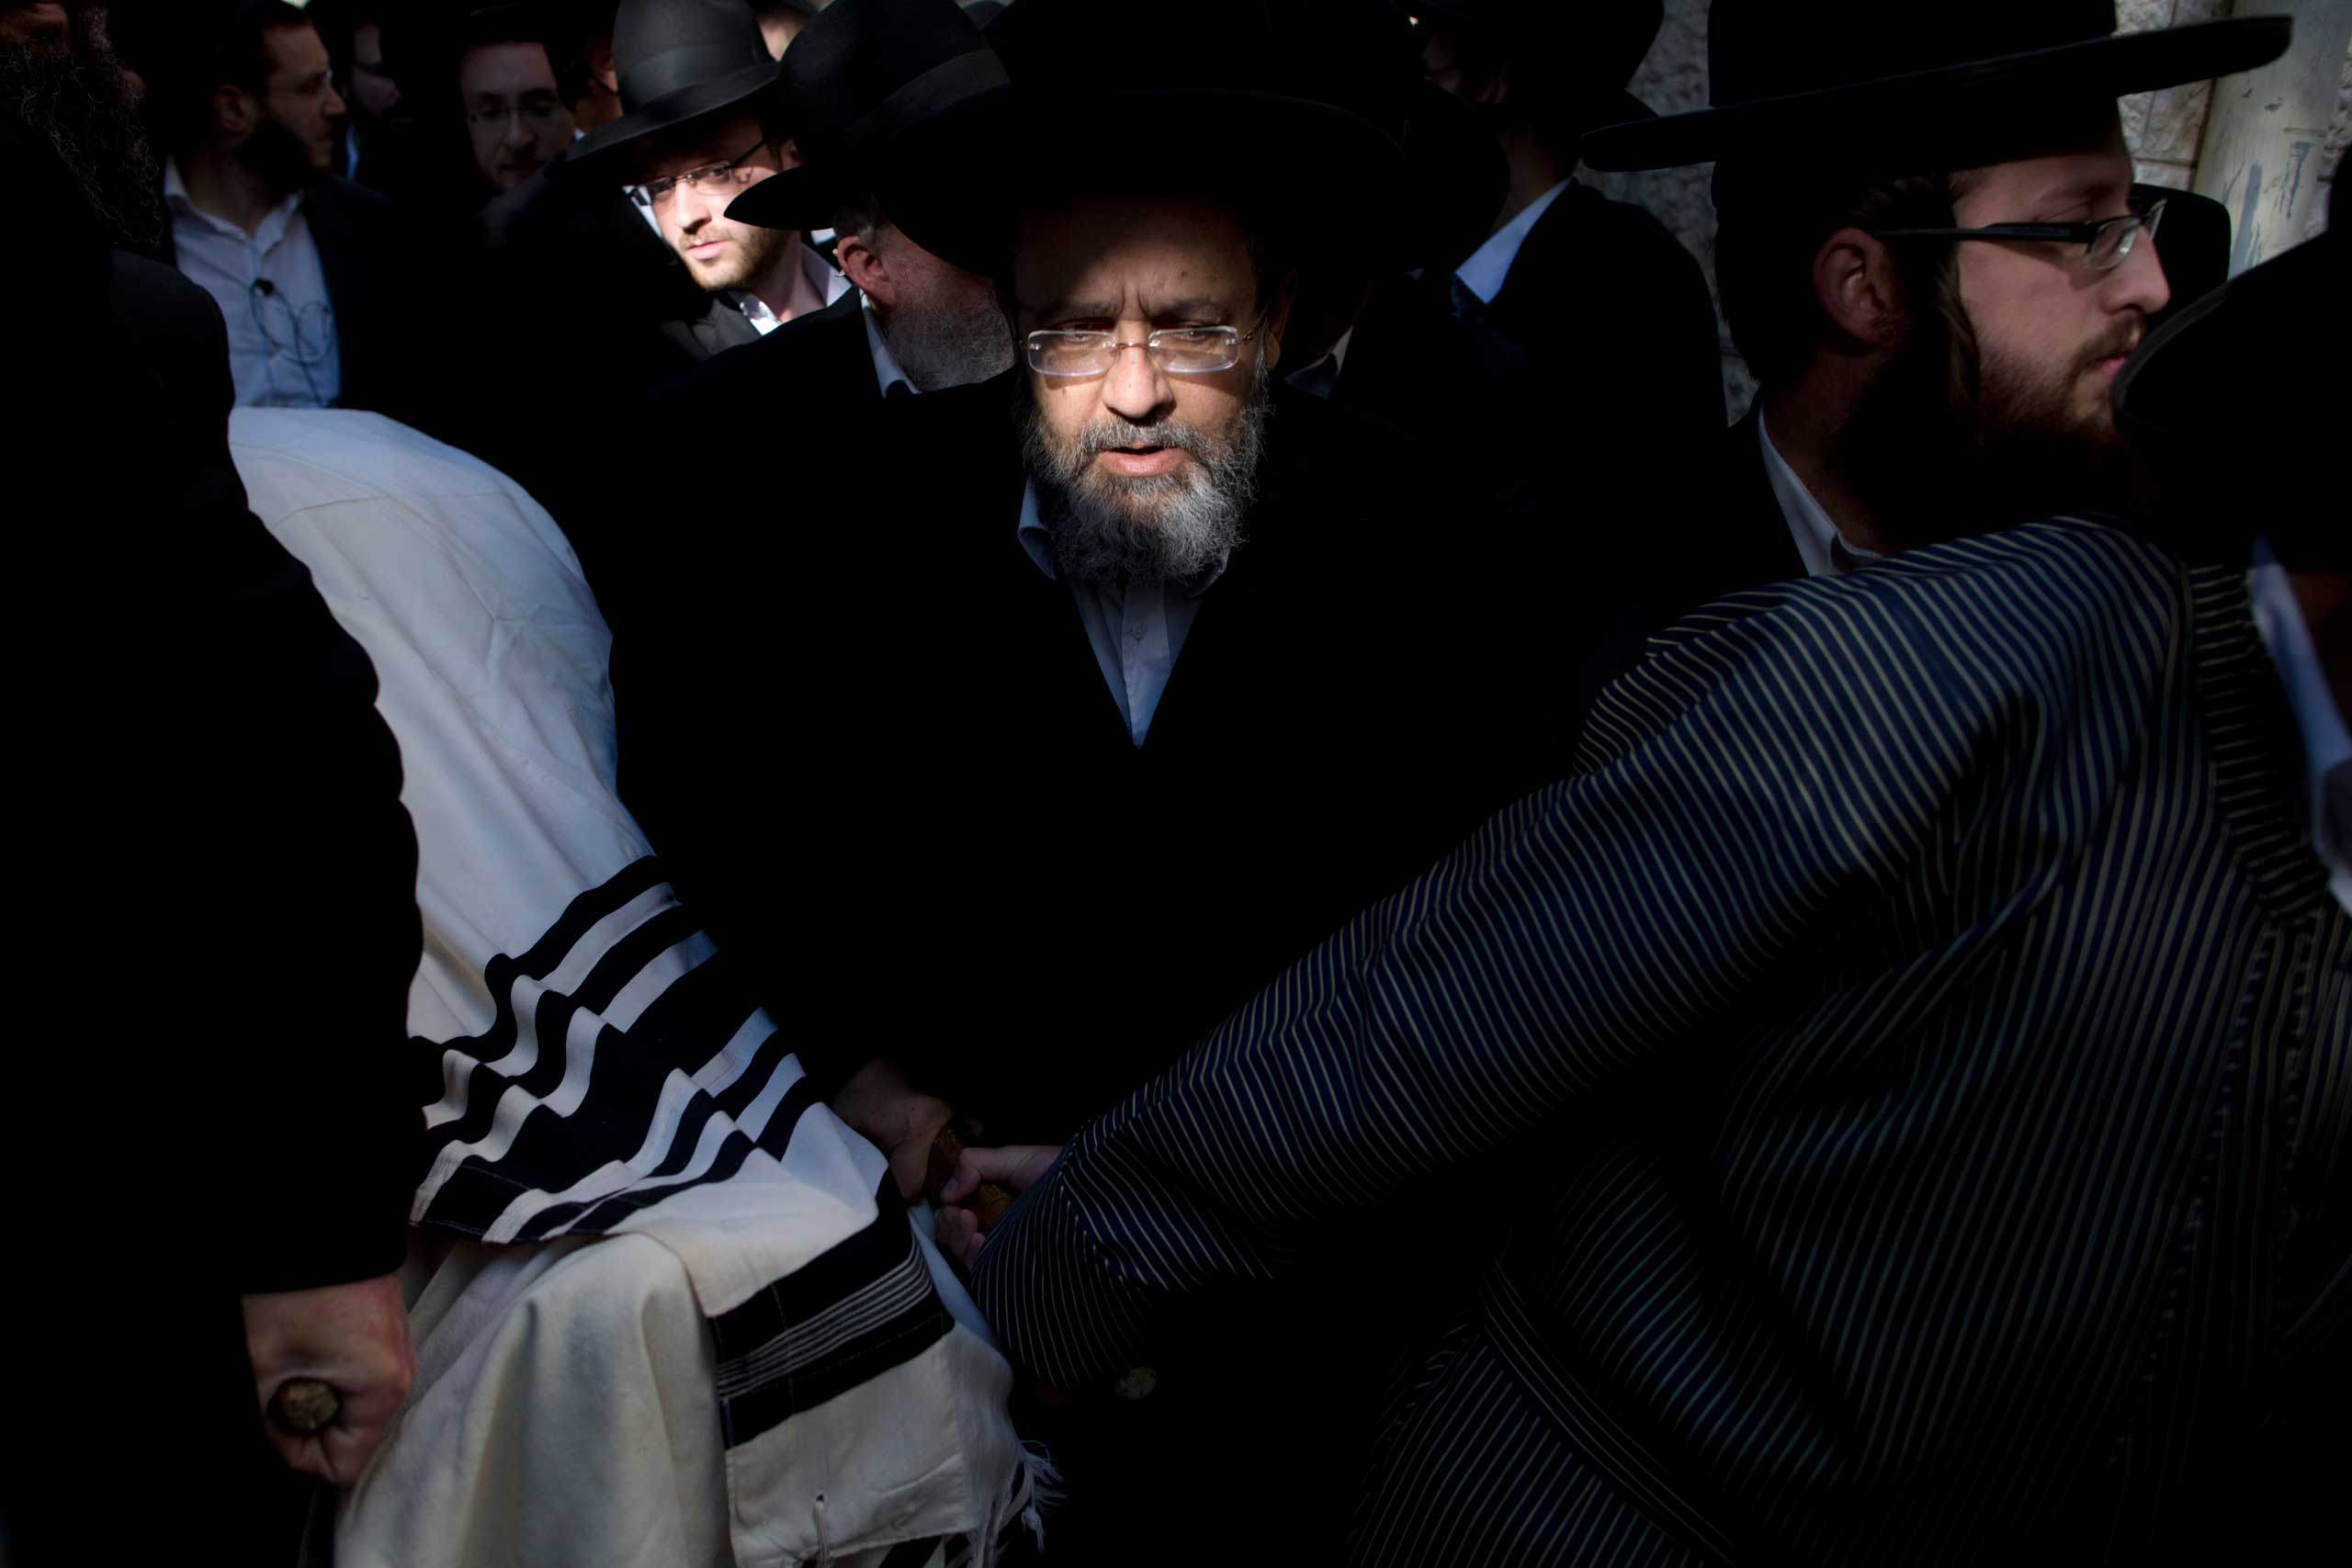 Ultra-Orthodox Jews carry the body of Mosheh Twersky during his funeral in Jerusalem on Nov. 18, 2014.